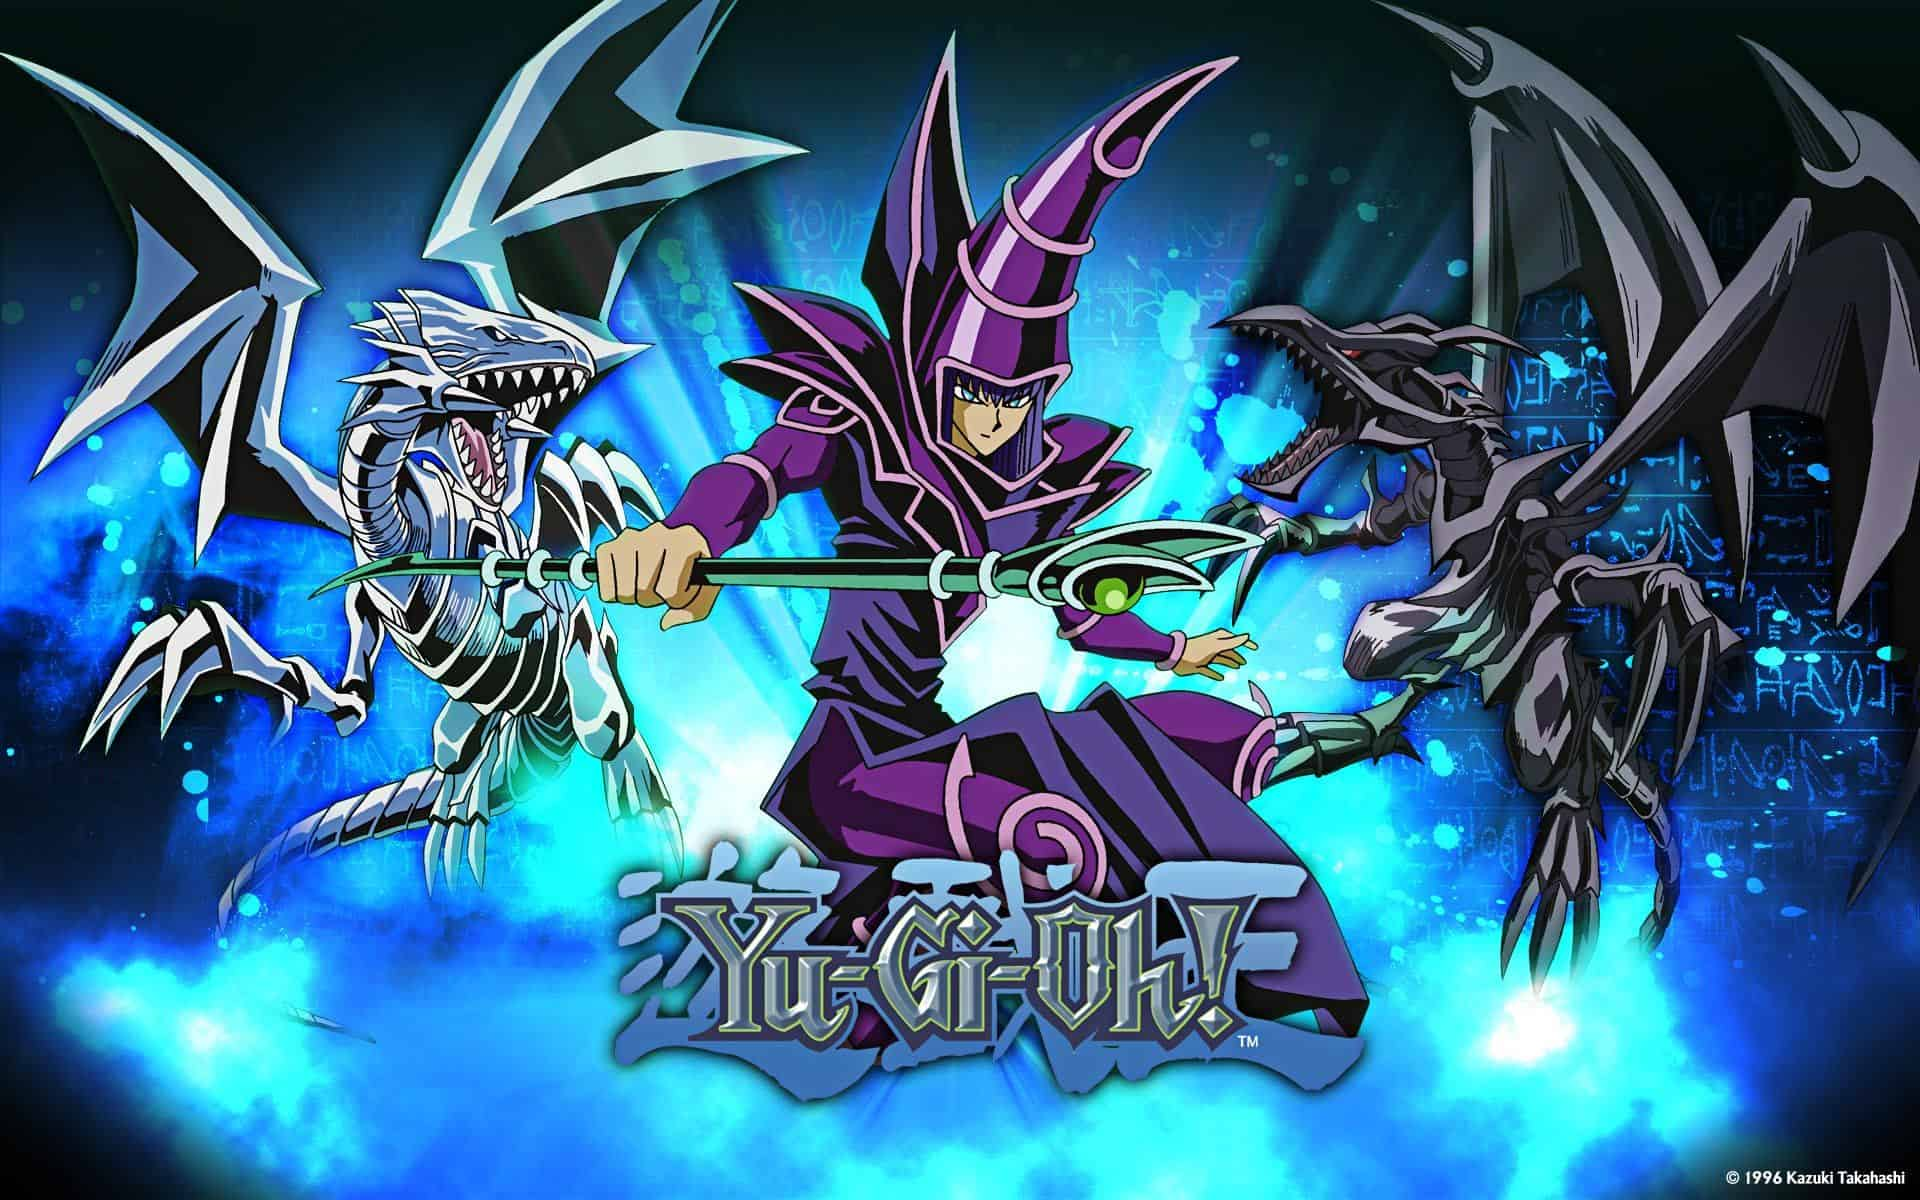 Come giocare a Yu-Gi-Oh online